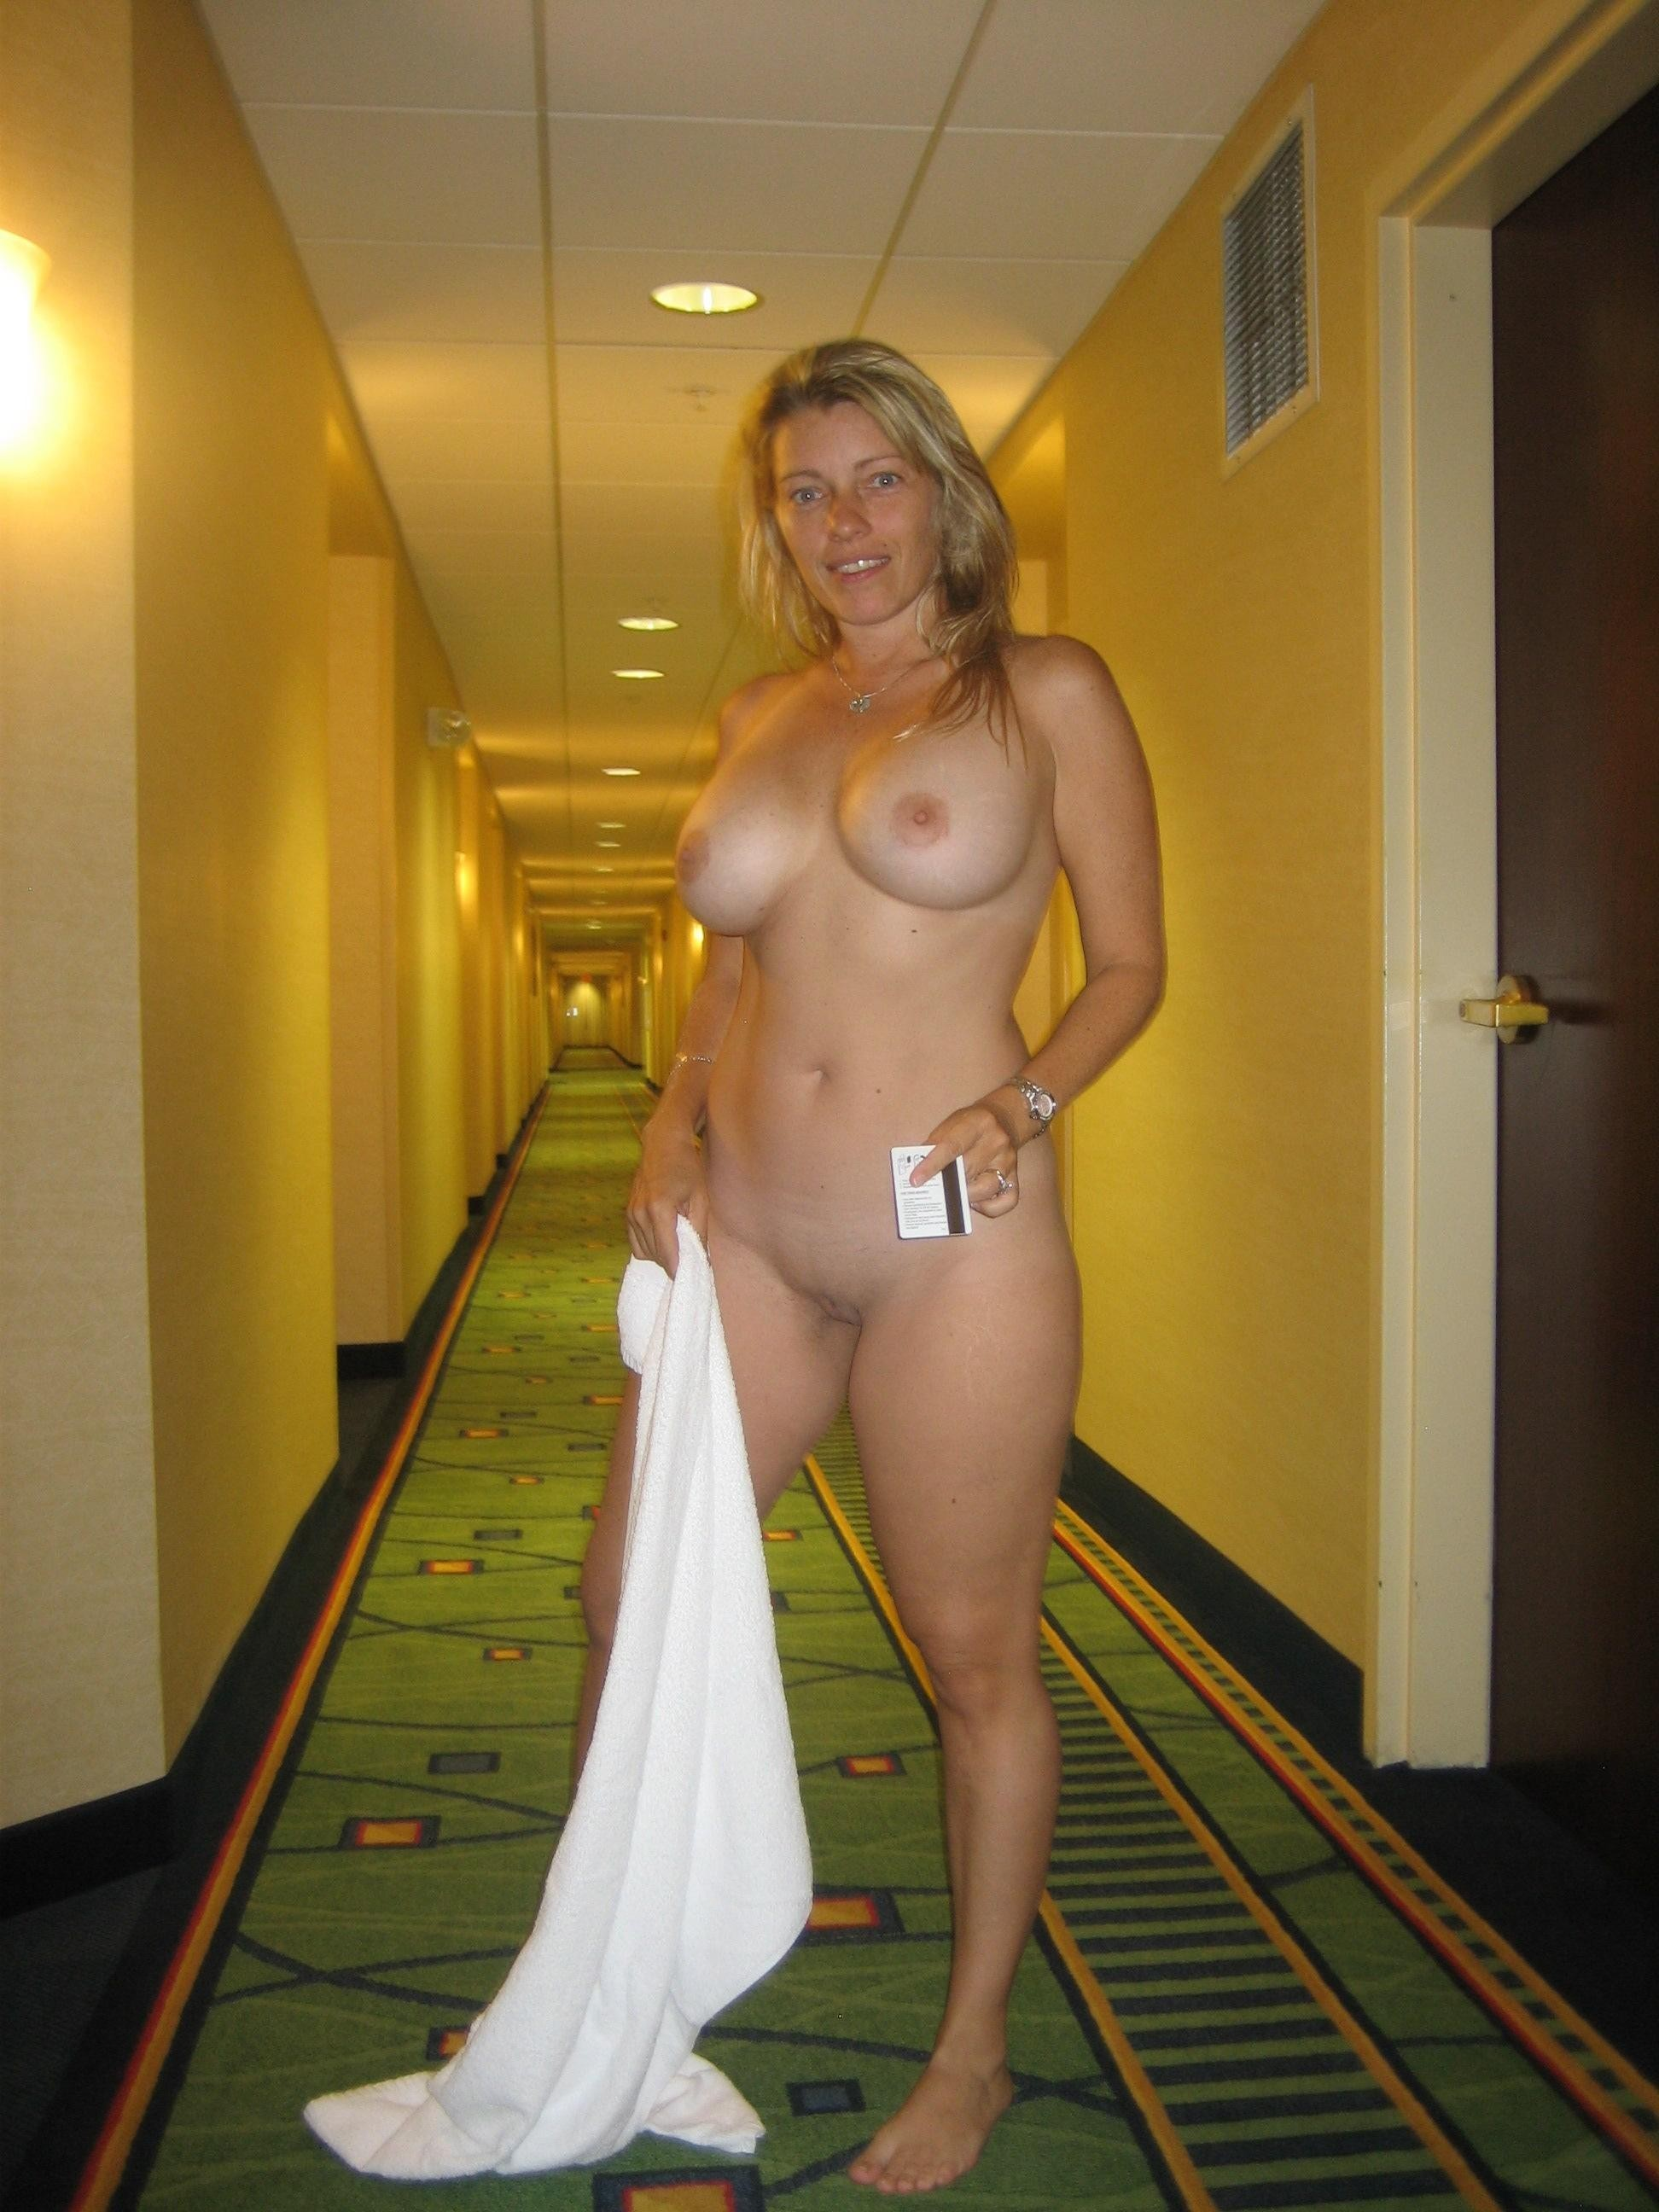 Hotel nude girl dare naked in